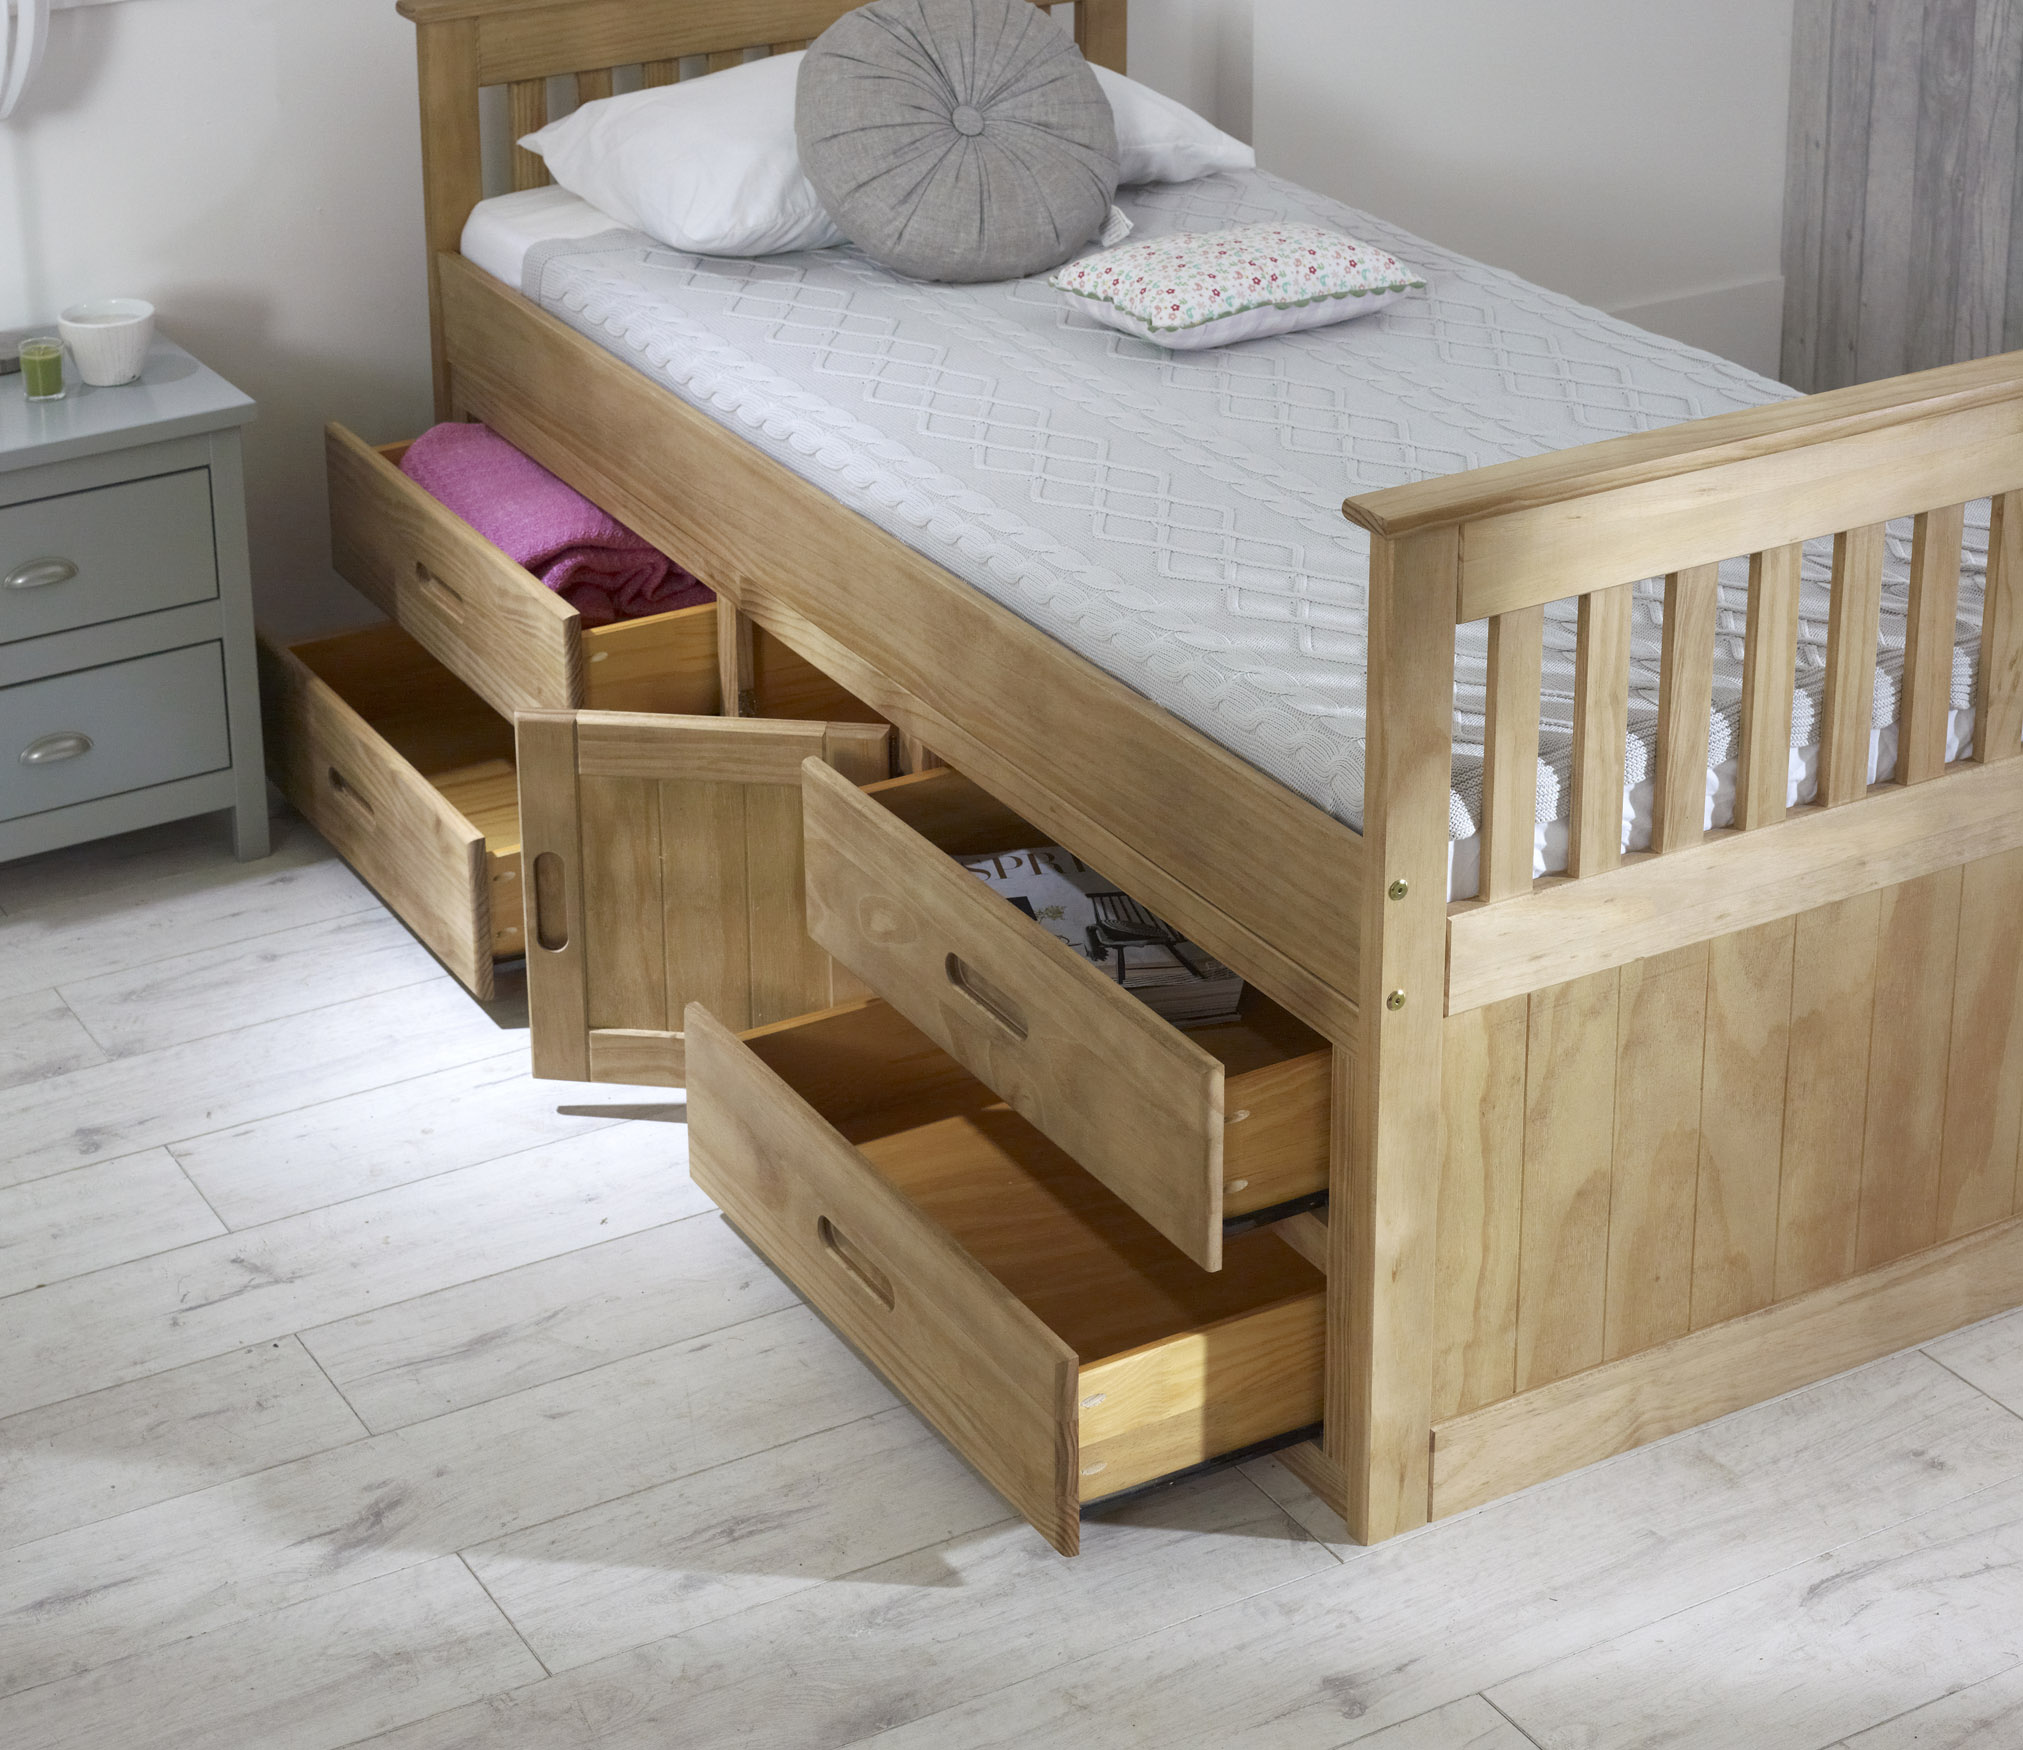 Captains Storage Bed in Waxed